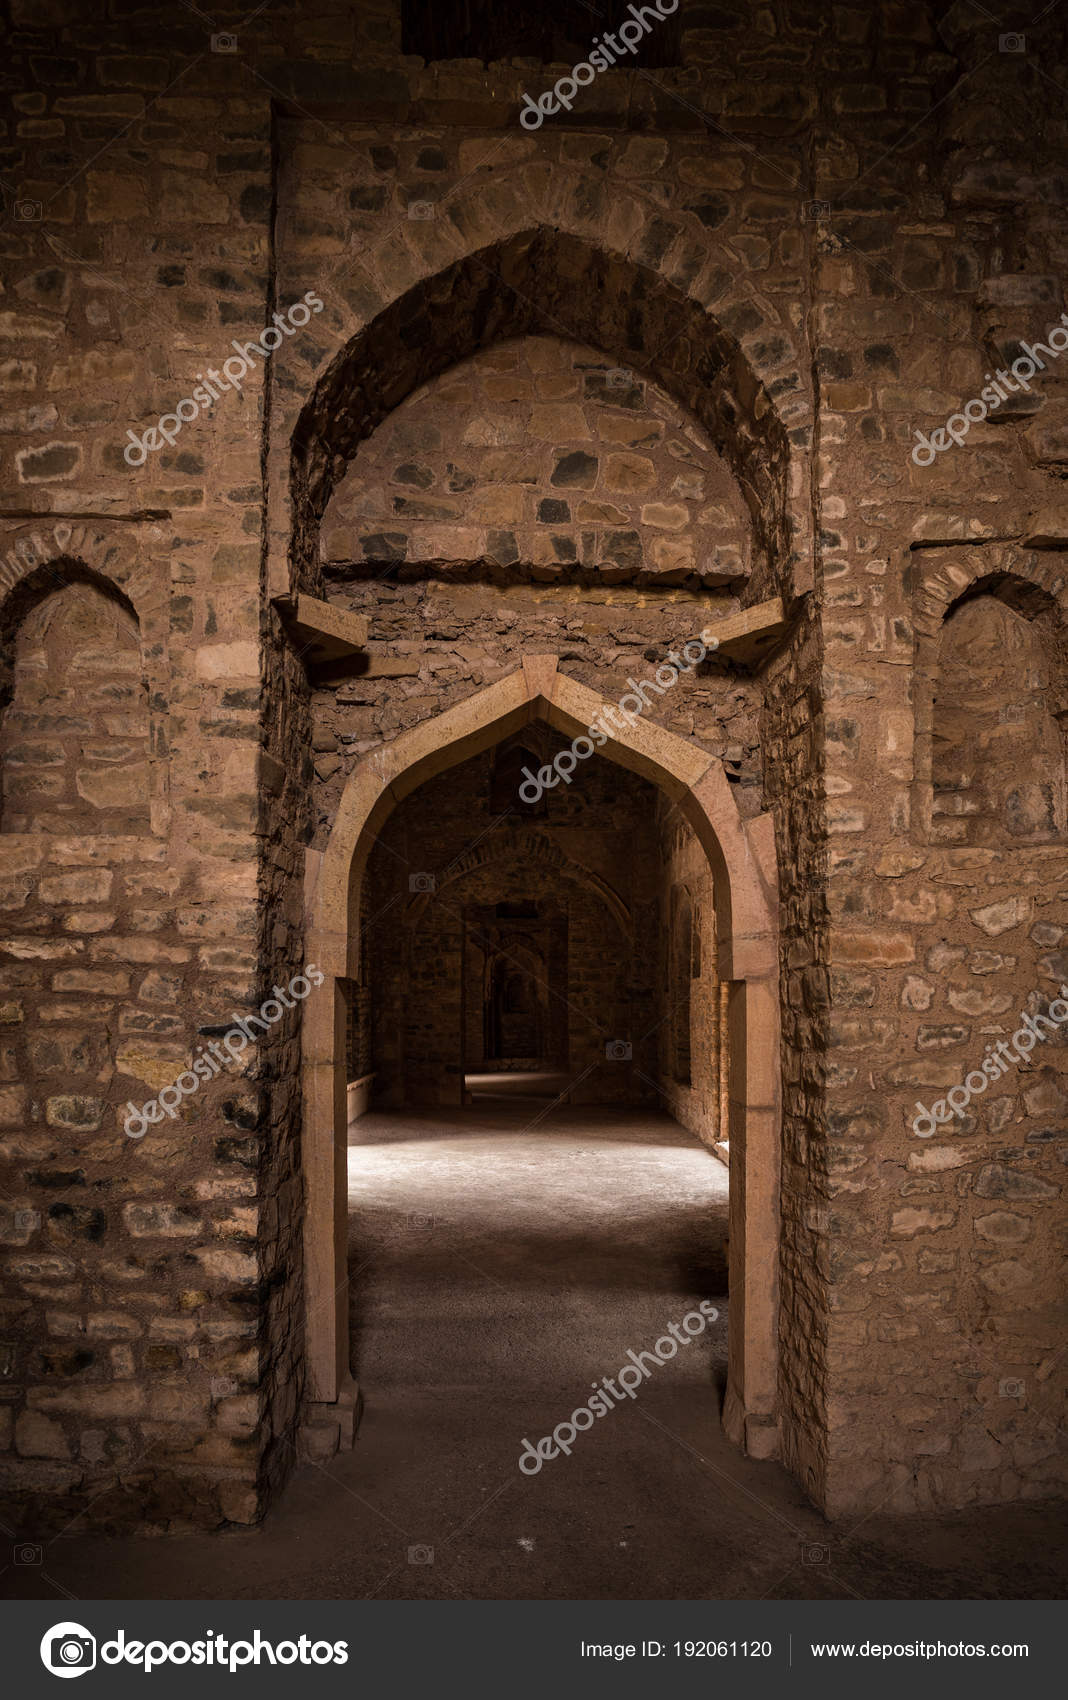 Mandu India afghan ruins of islam kingdom palace interior mosque monument and muslim tomb. Sunshine from door in dark corridor. u2014 Photo by fbxx & Mandu India afghan ruins of islam kingdom palace interior mosque ...